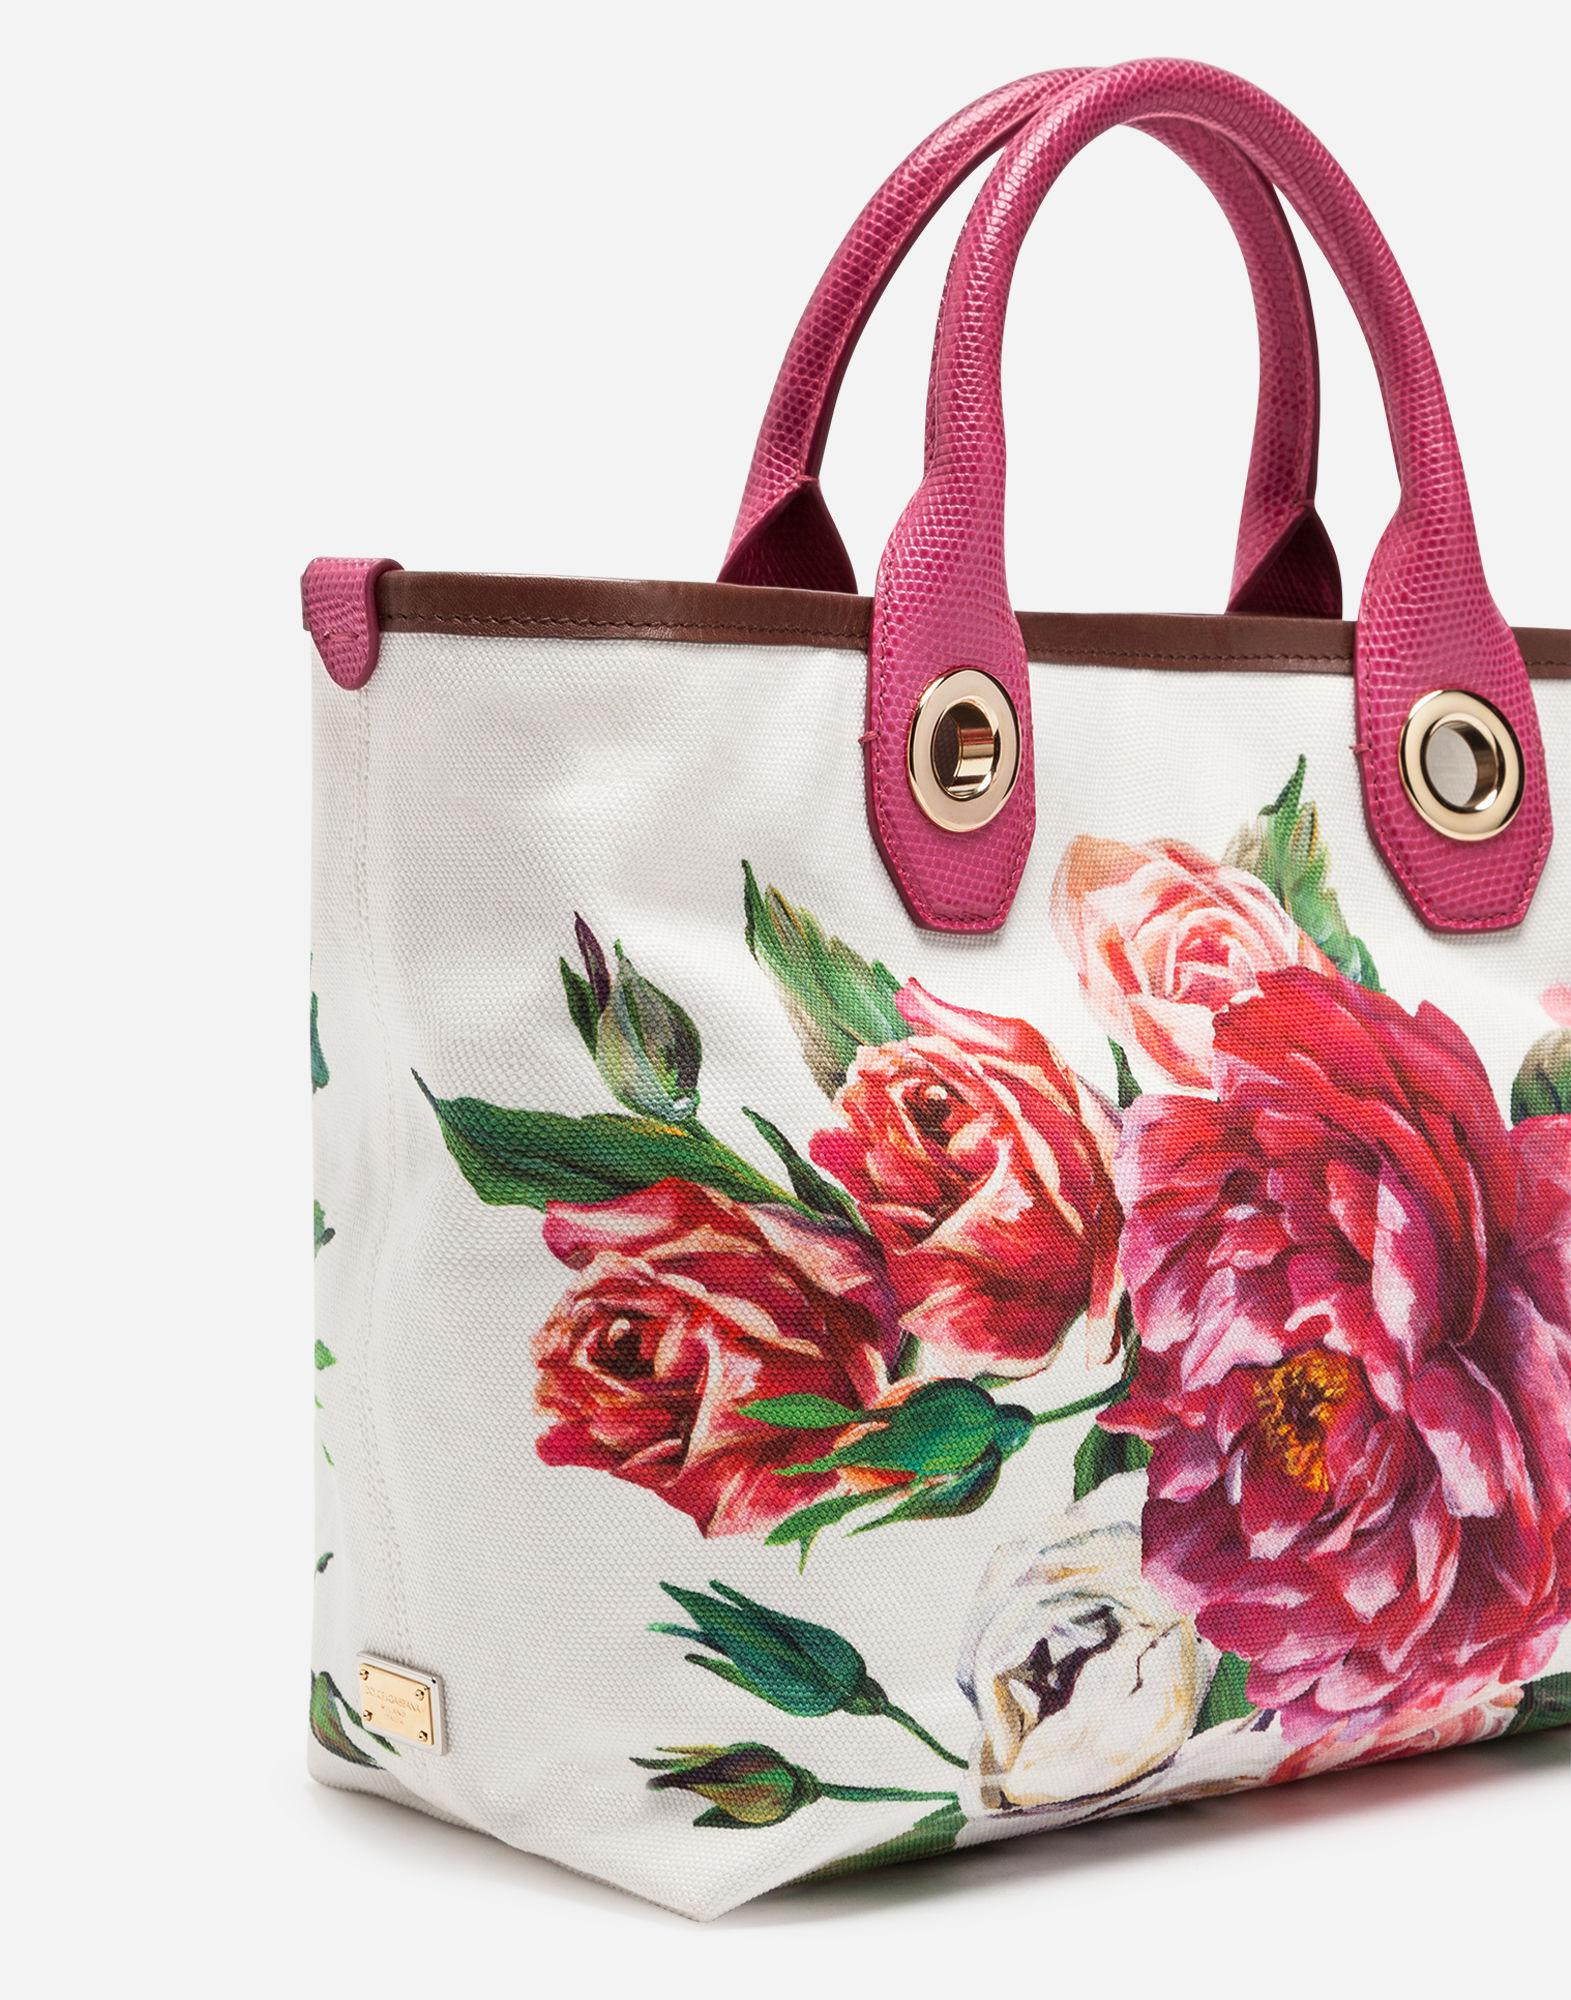 1130f4f3c4c0 Lyst - Dolce   Gabbana Small Capri Shopping Bag In Printed Canvas in Red